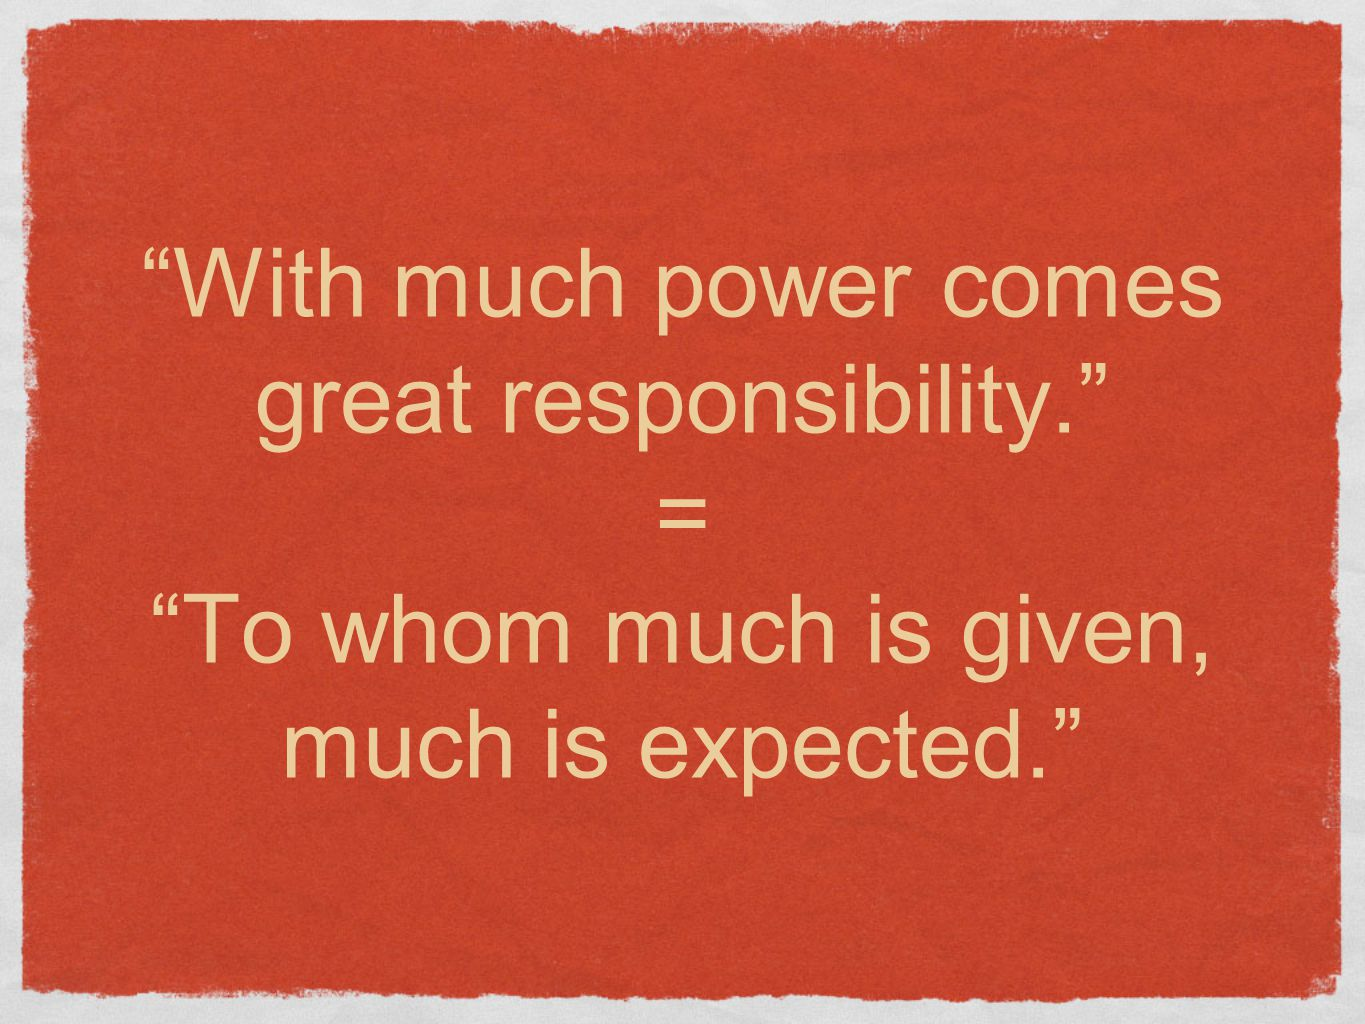 With much power comes great responsibility. = To whom much is given, much is expected.